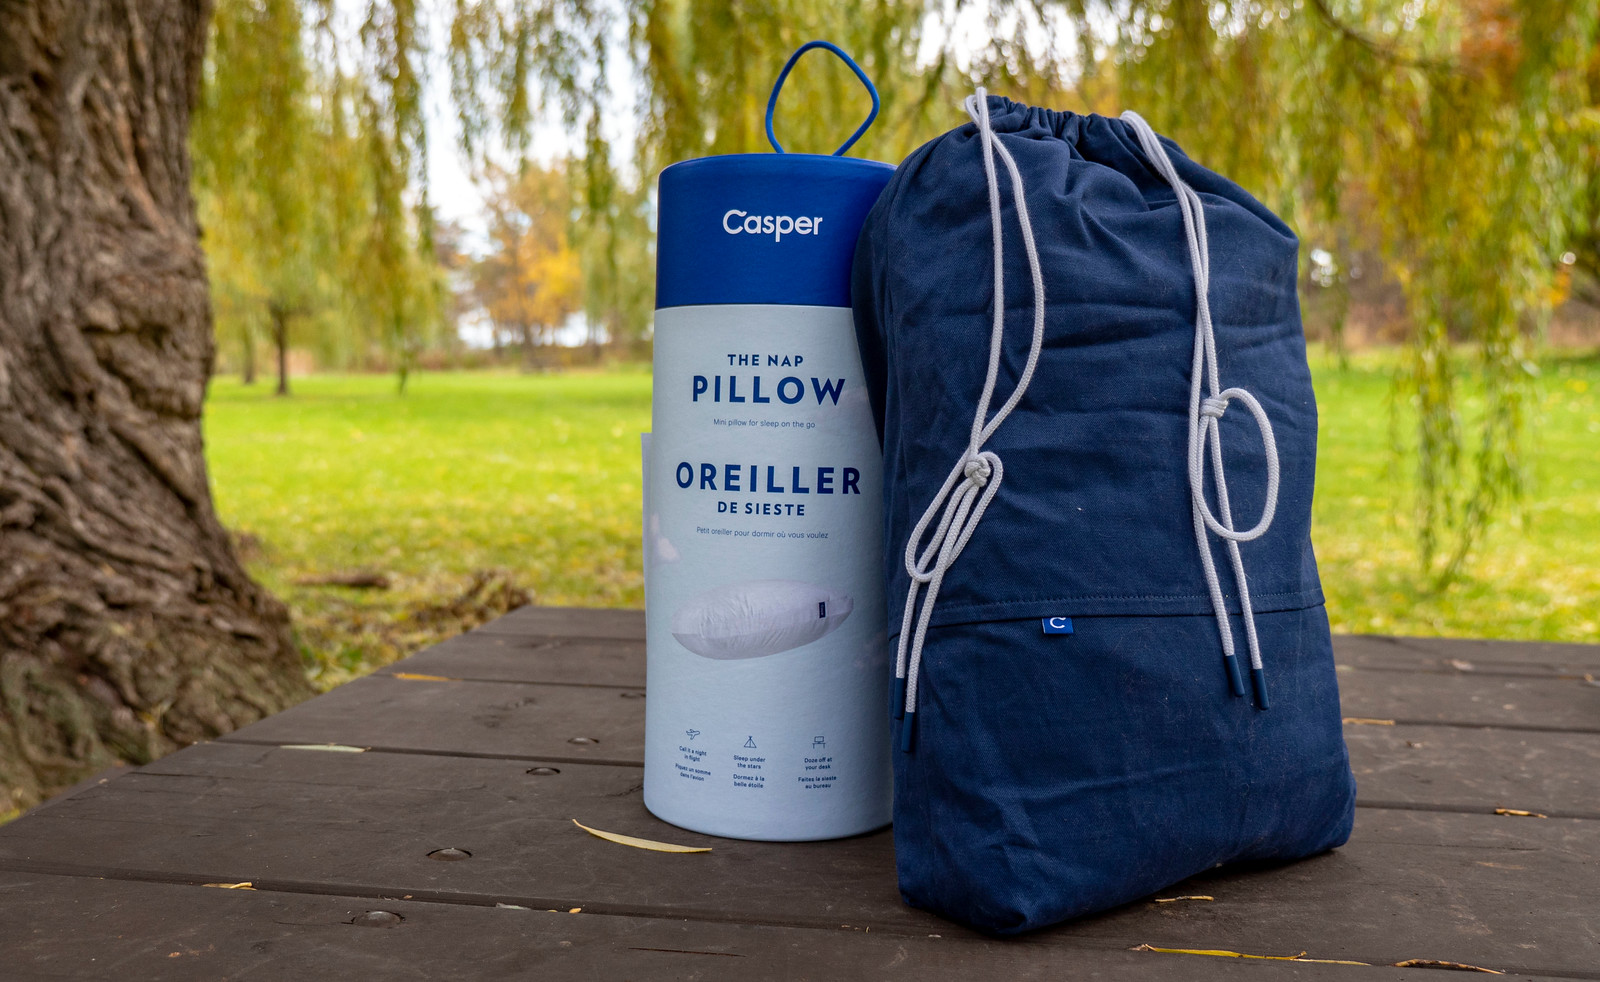 Travel Gifts for Frequent Flyers - Casper Nap Pillow